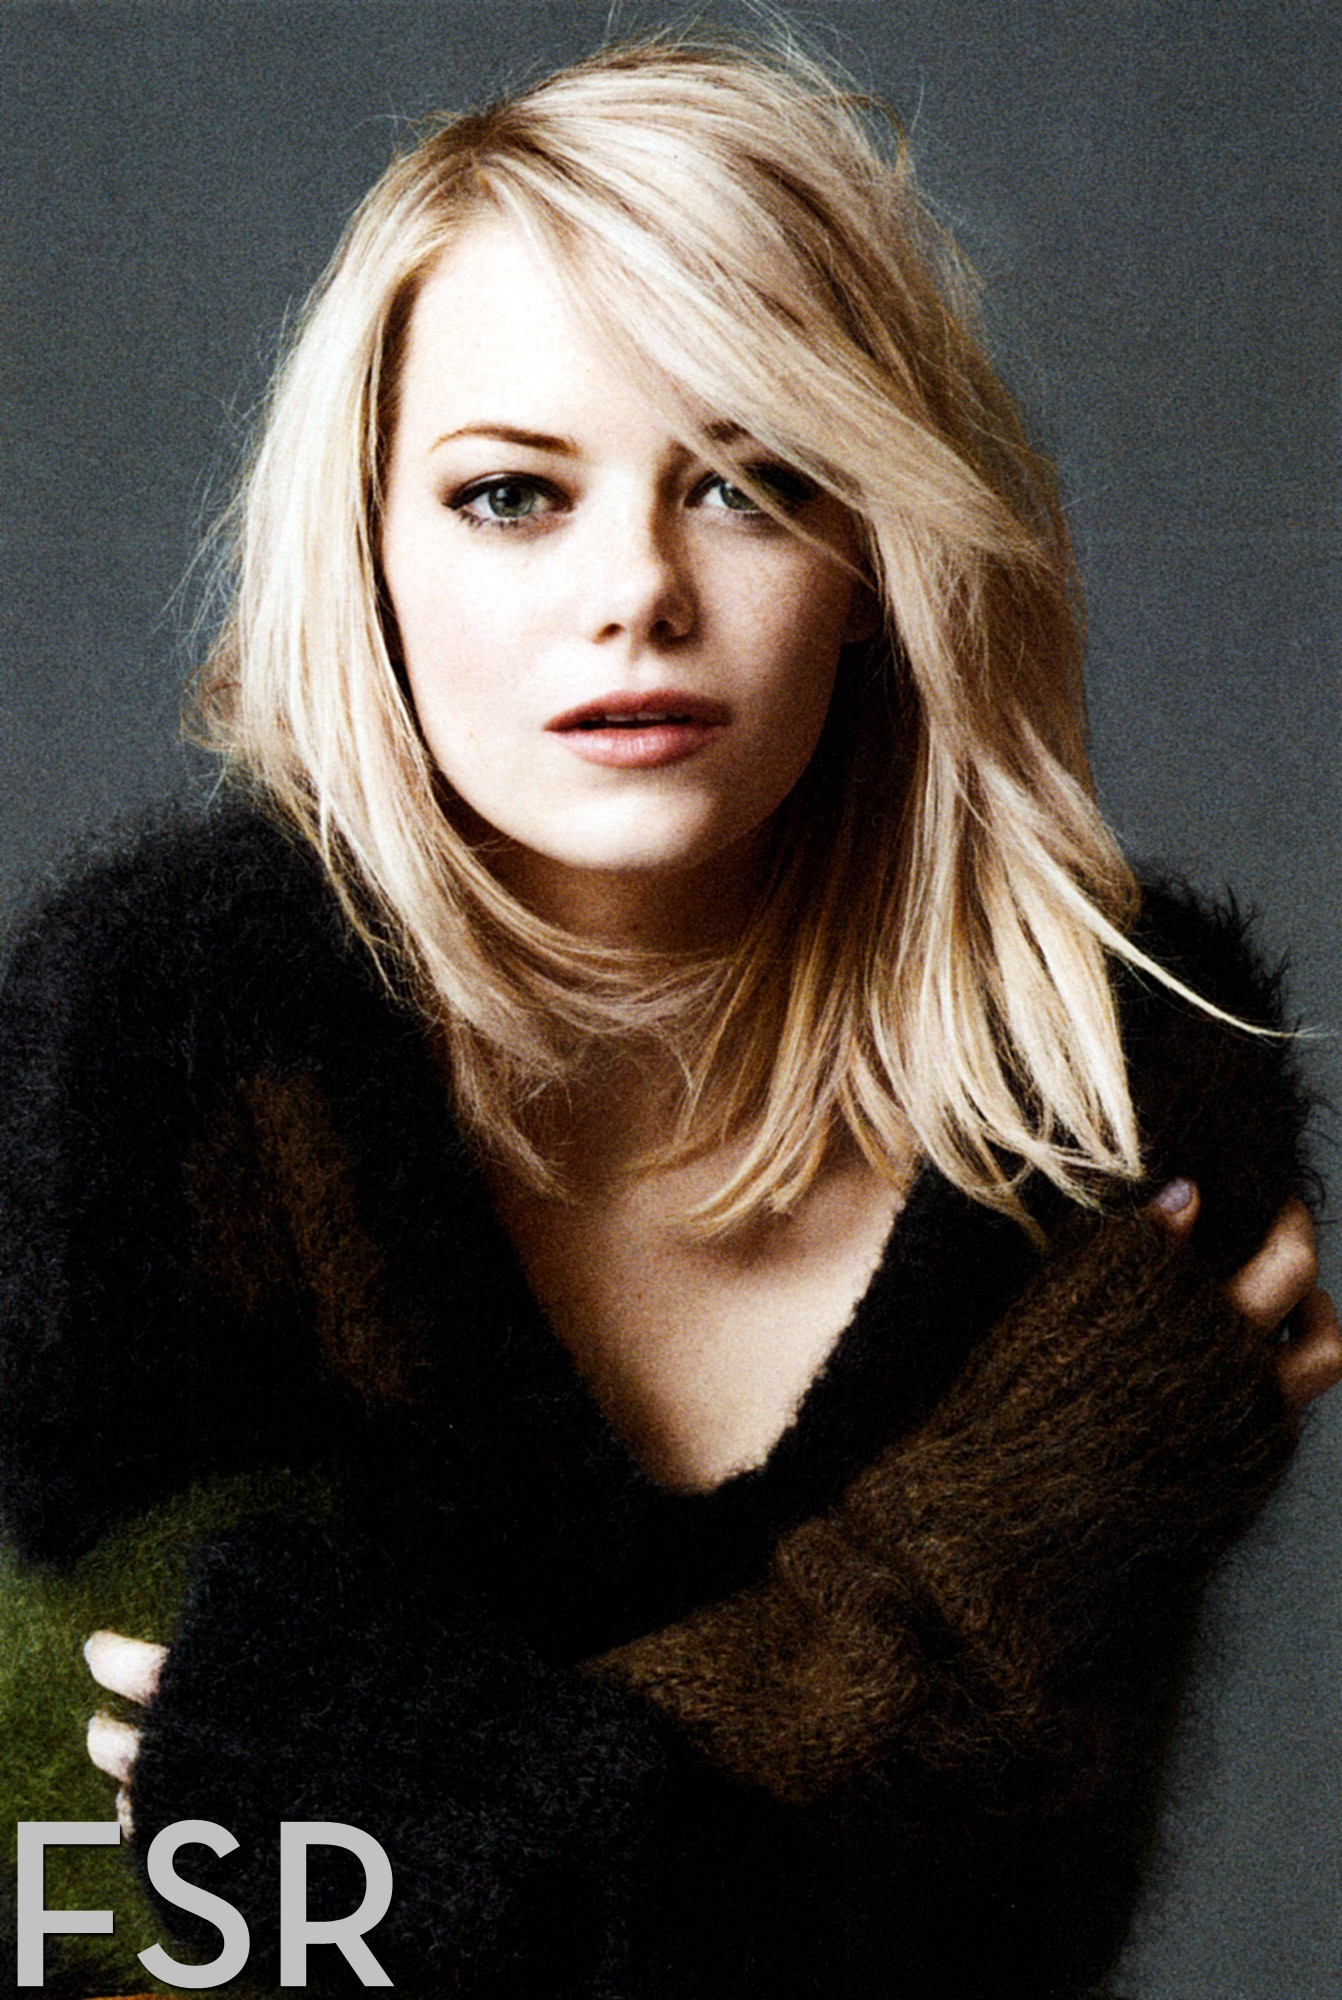 Emma Stone images InStyle USA photoshoot - December 2012 ...